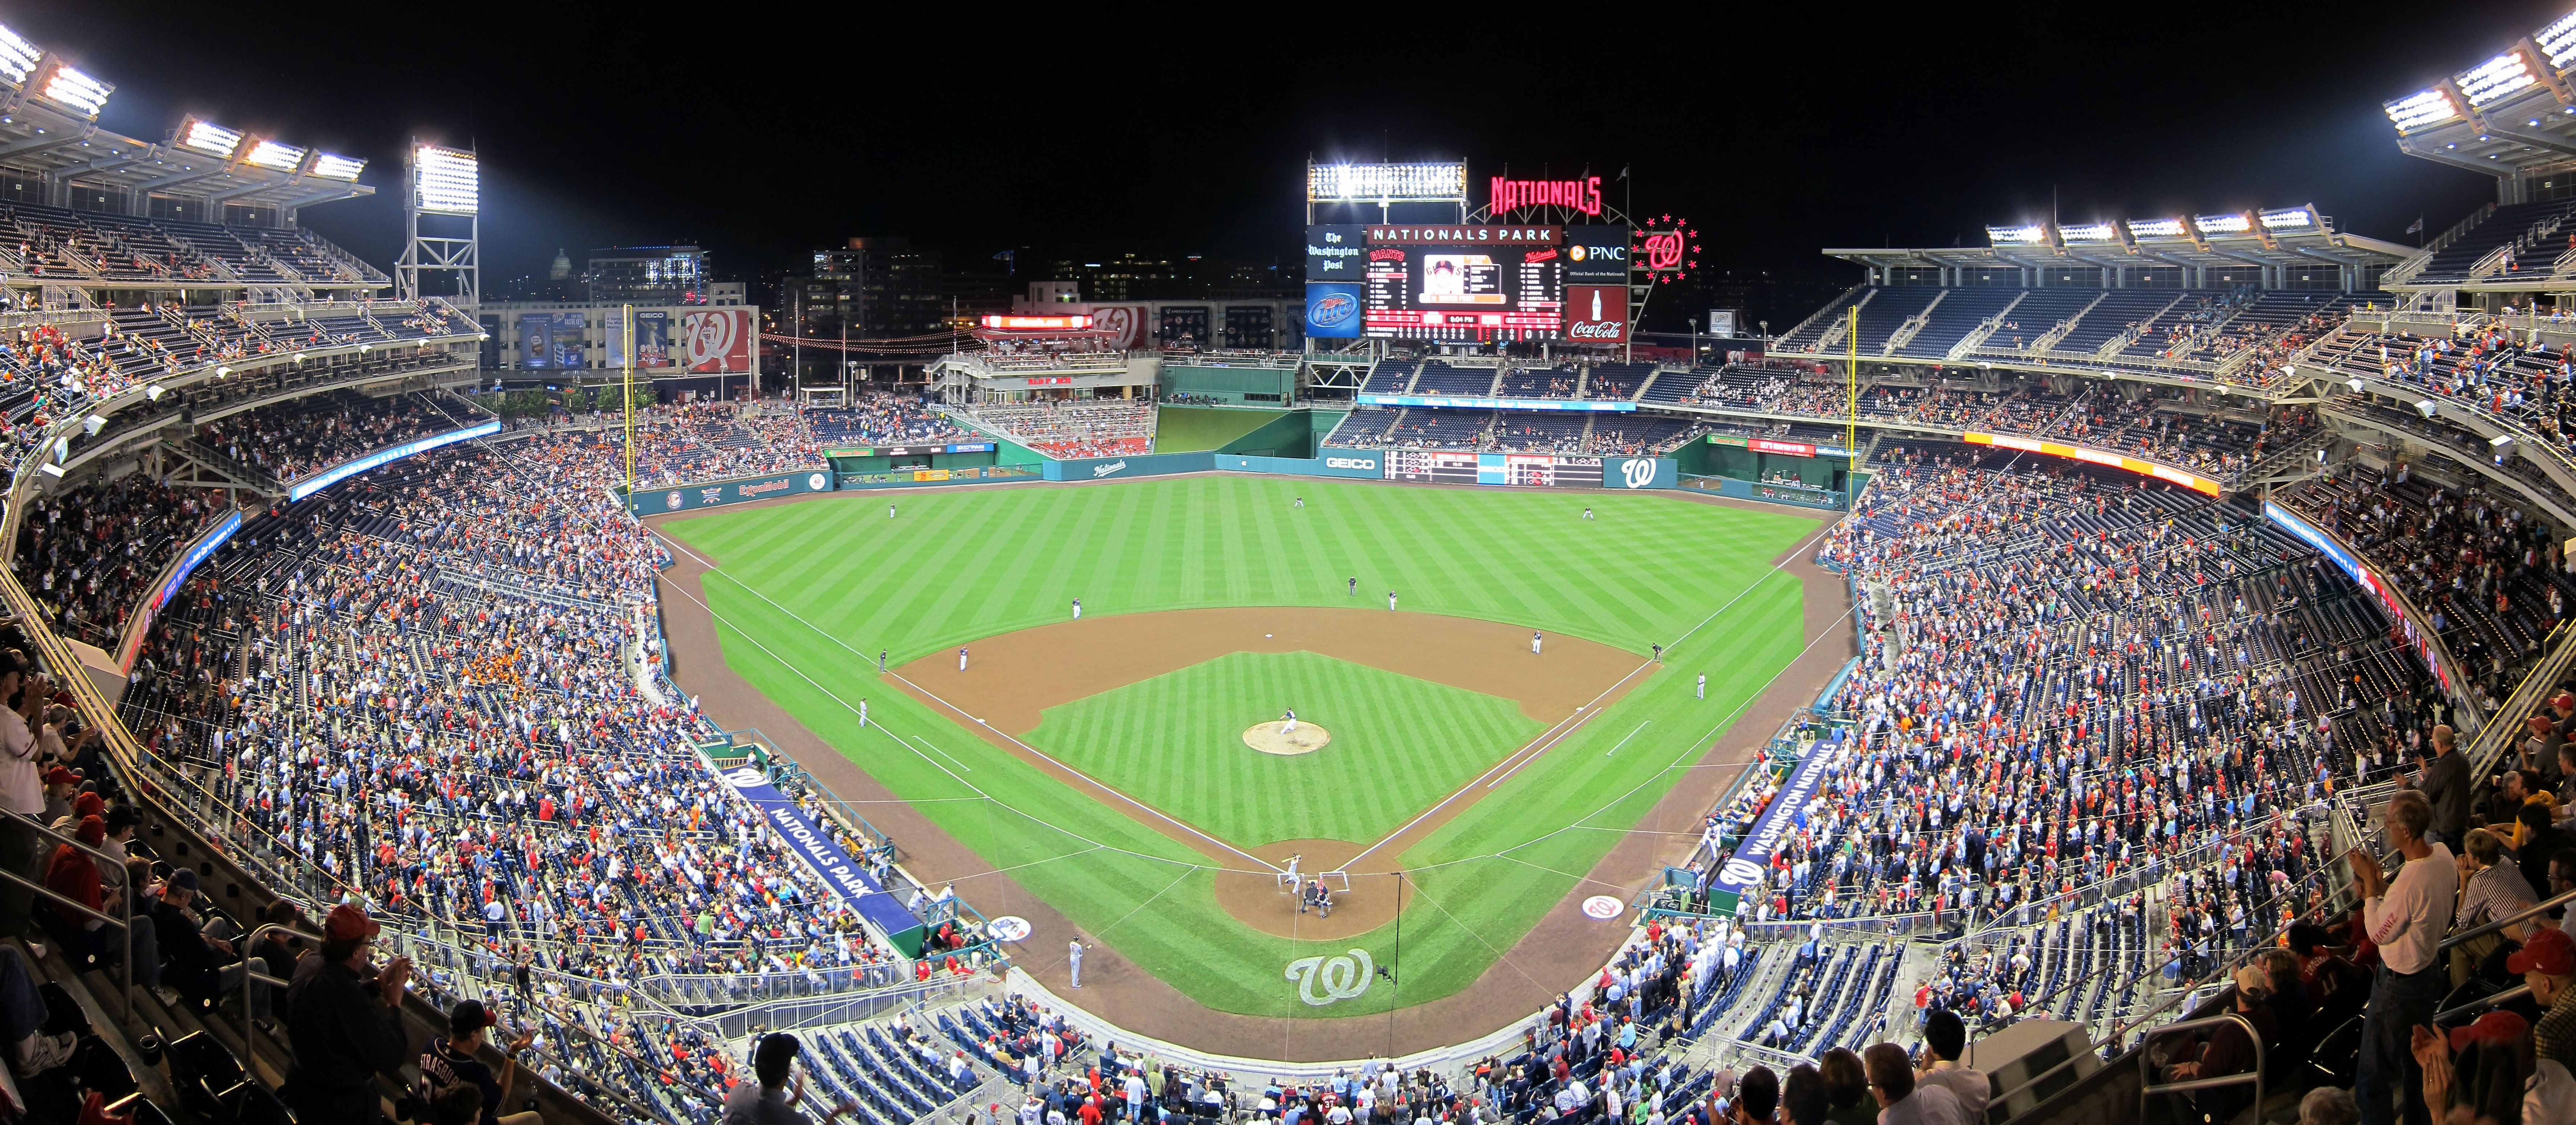 Nationals Park Panorama 2011 05 02 Washington Nationals v San Francisco Giants 5a5d473e845b ed1